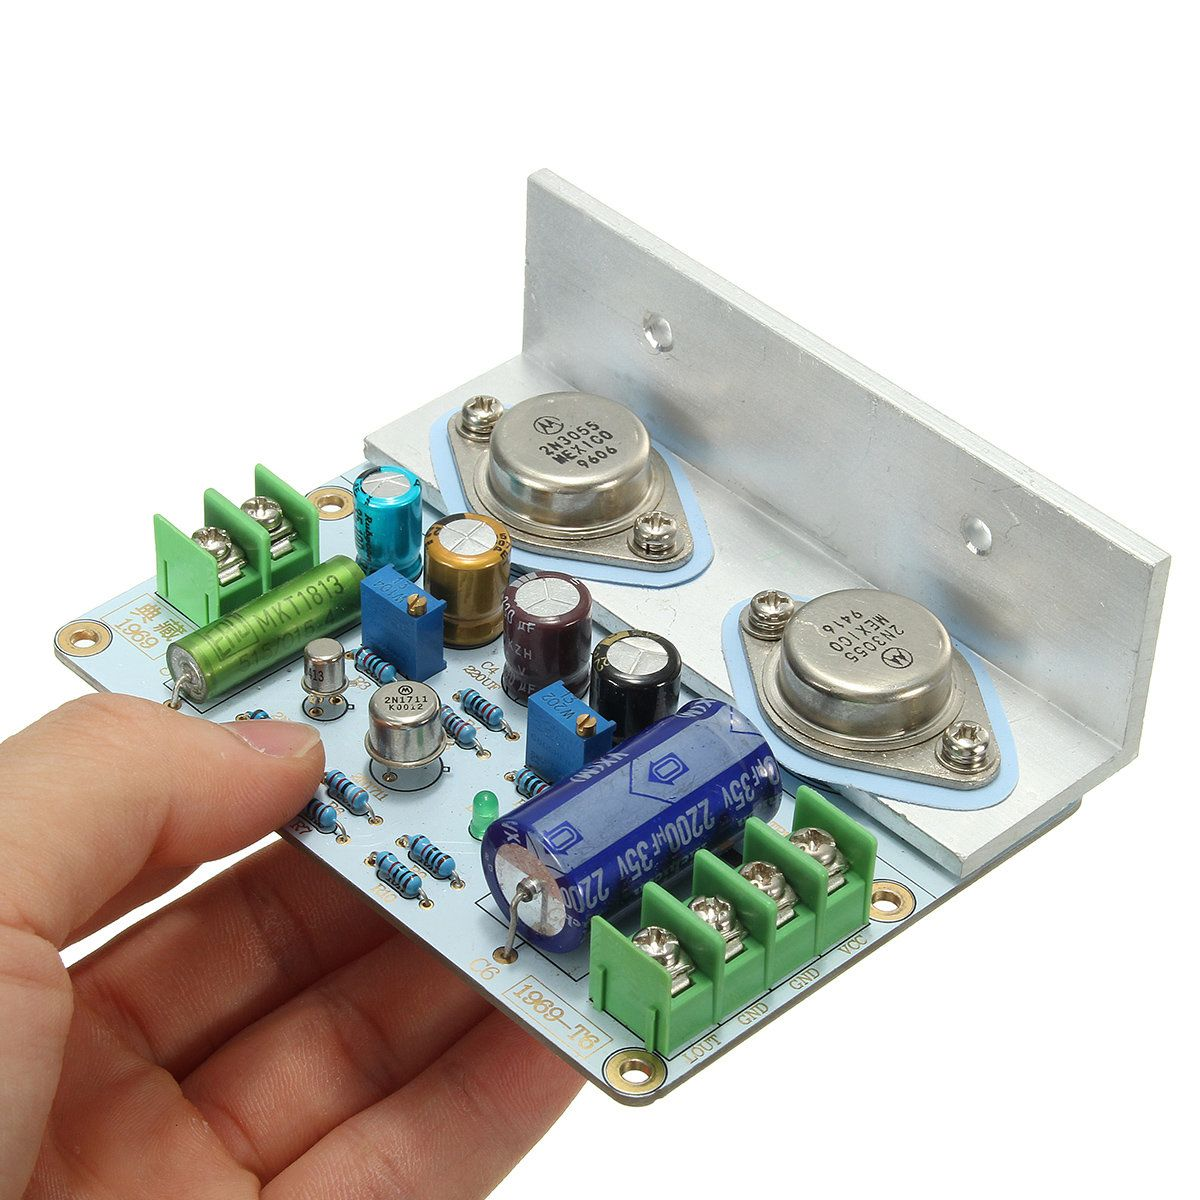 10 15w Jlh1969 Class A Amplifier Amp Board Left Channel Pcb Mosfet By 2sk1058 Assembled Mot 2n3055 Sale Banggood Mobile